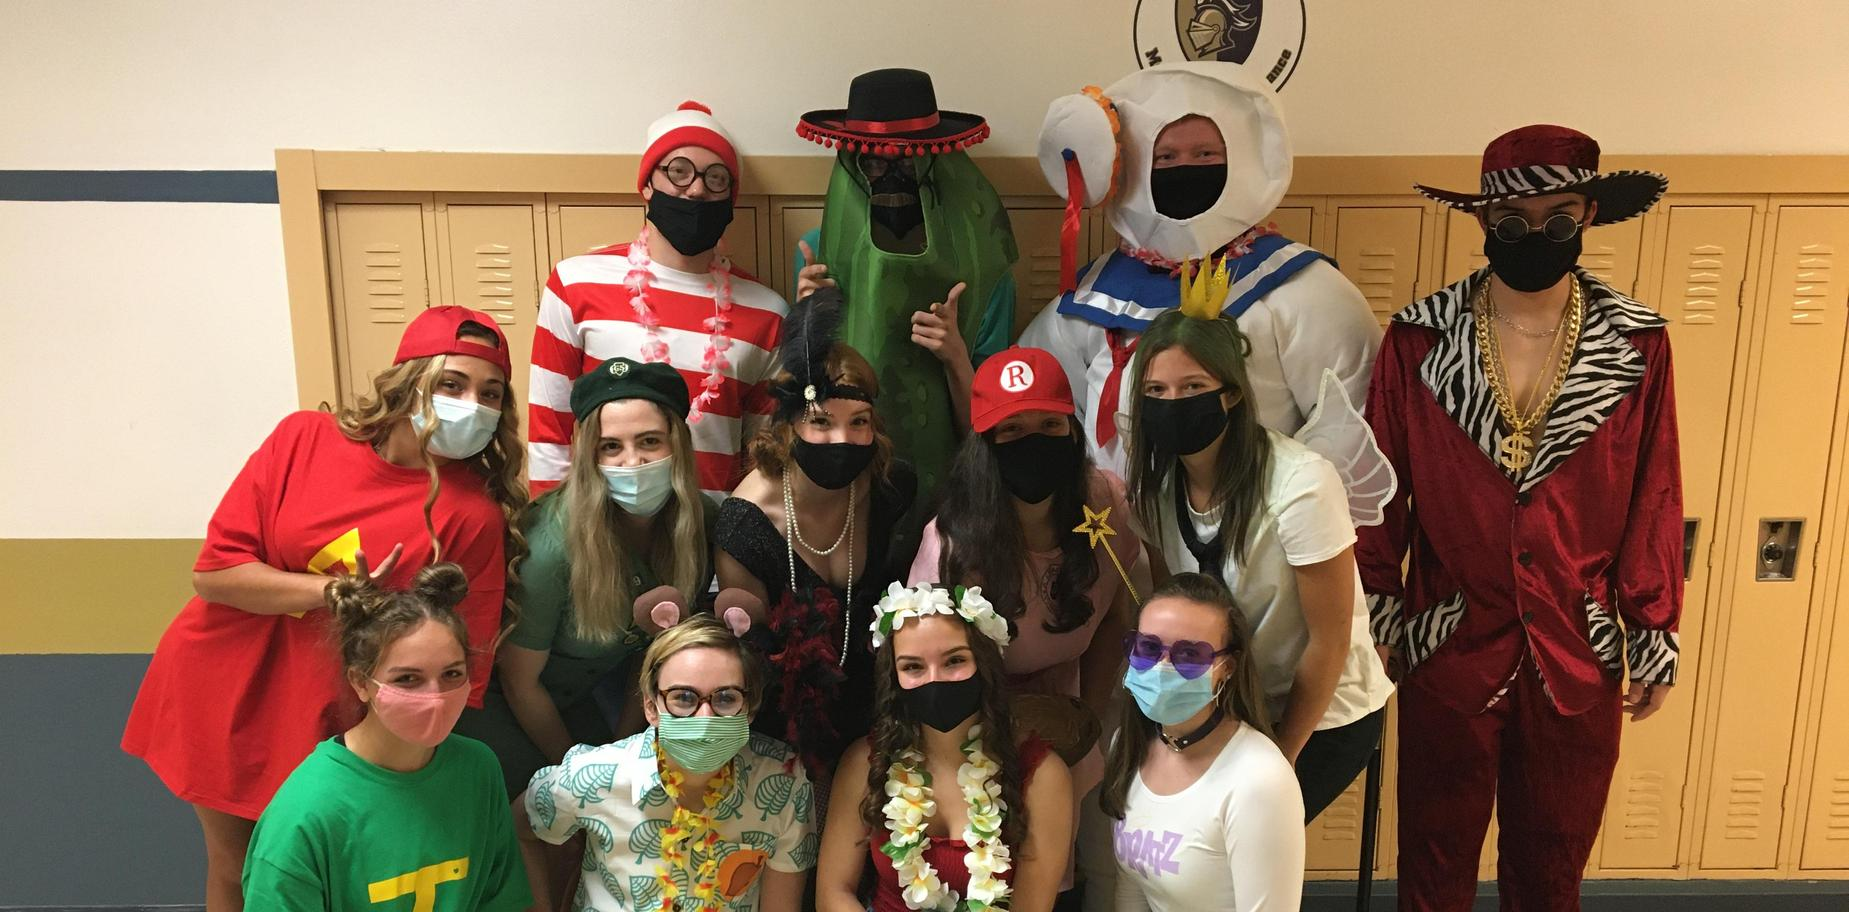 group of students in costumes